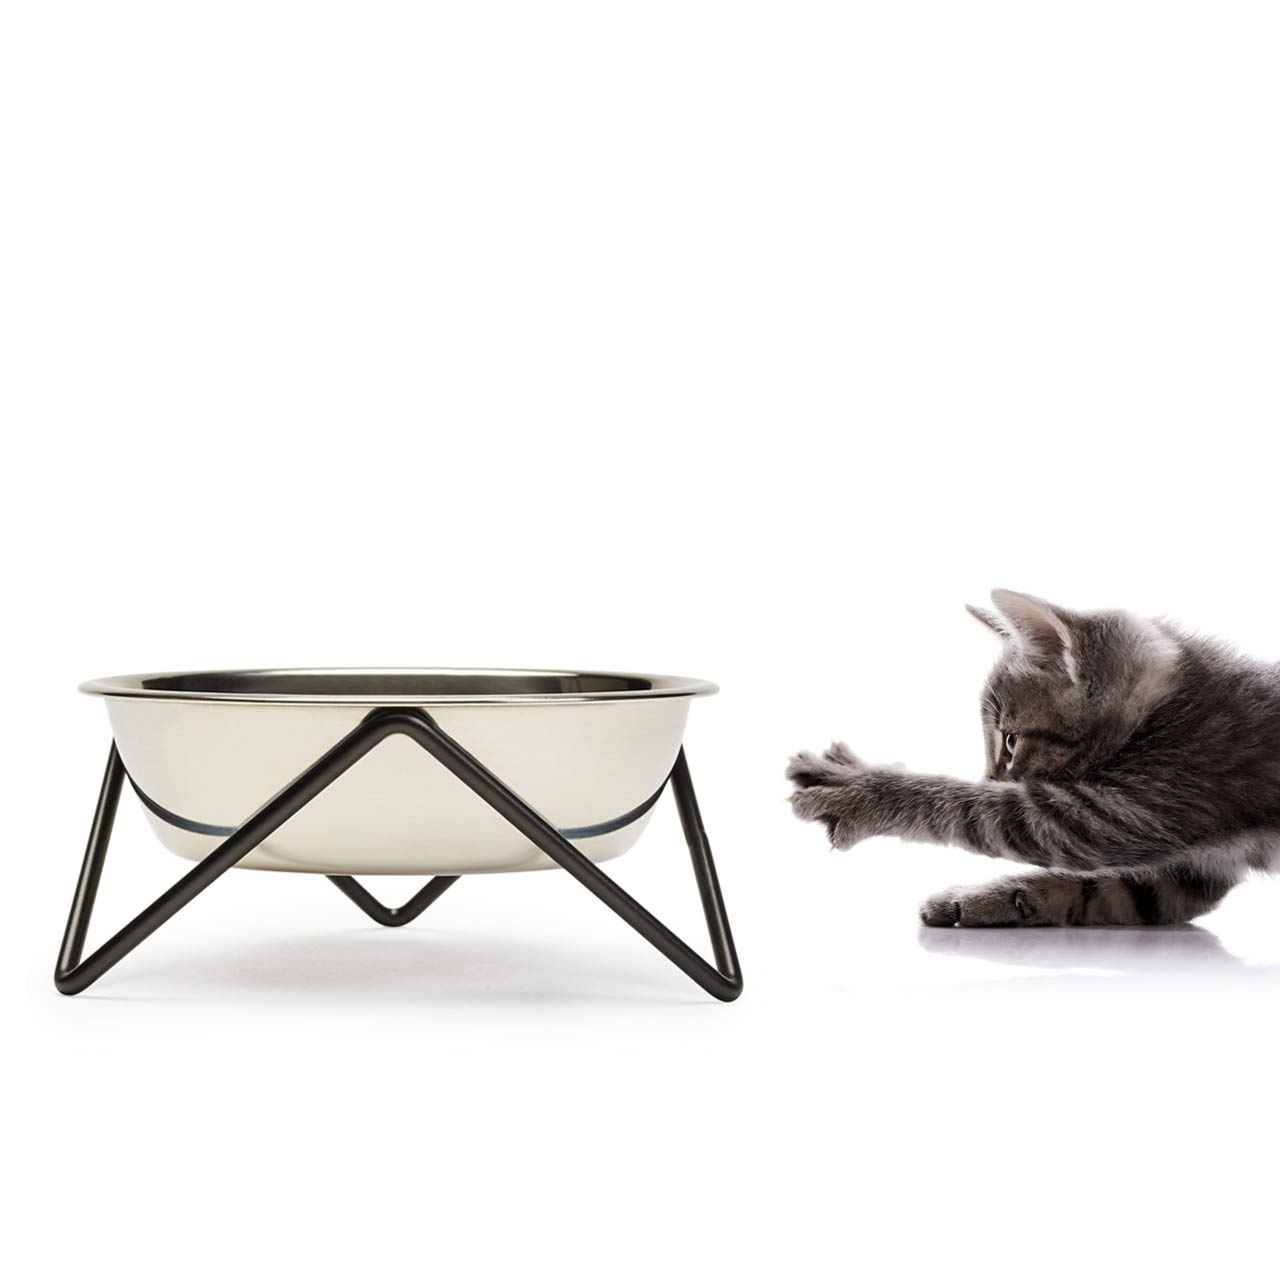 BENDO meow luxe cat dish with black stand | The Design Gift Shop